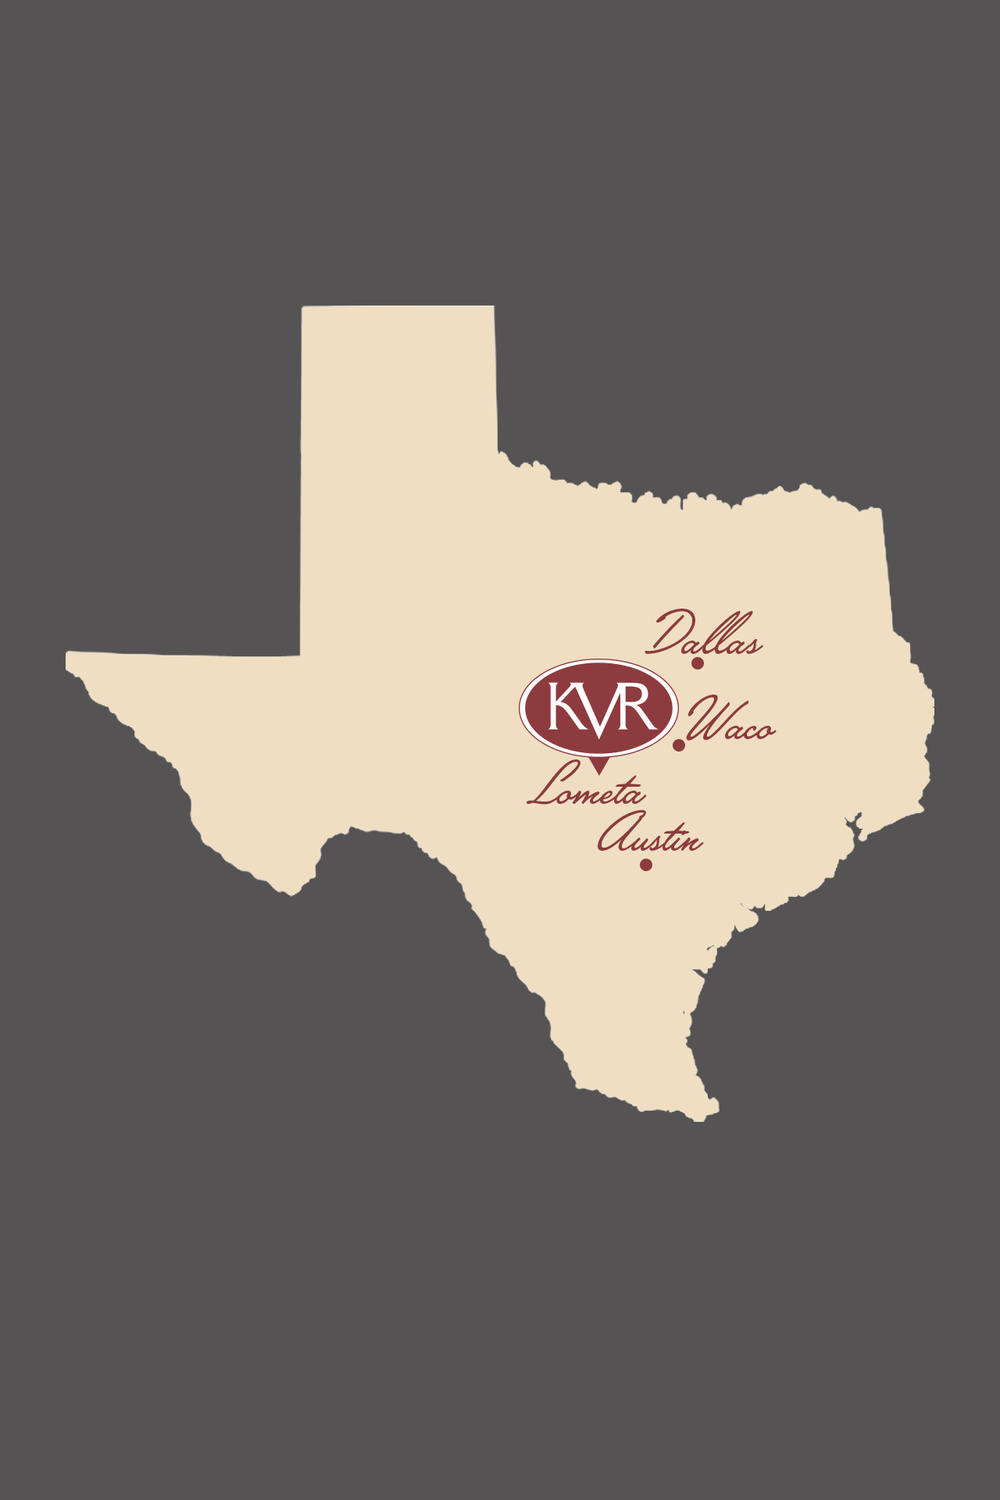 Thank you for visiting. We are fully booked until March 2018. Please check back with us. - AddressKaian Vista Ranch1857 E. FM 581Lometa, TX 76853